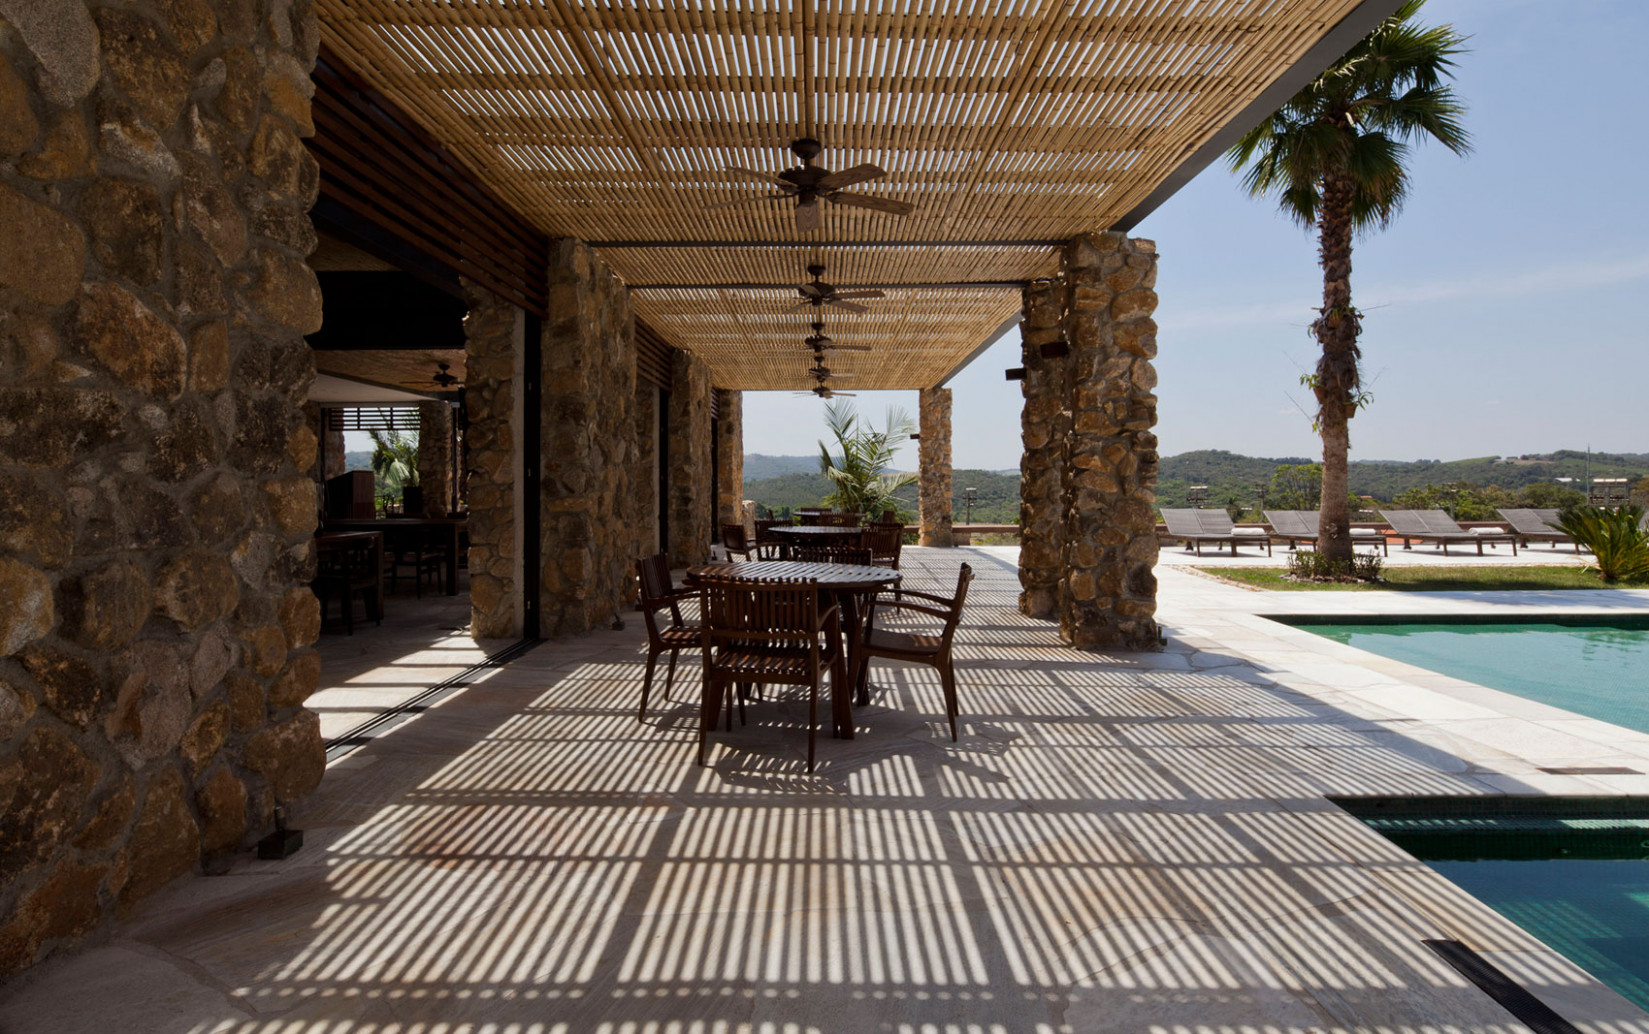 Ranch House By Galeazzo Design In Brazil | KeriBrownHomes Modern Home Patio & Carport Company